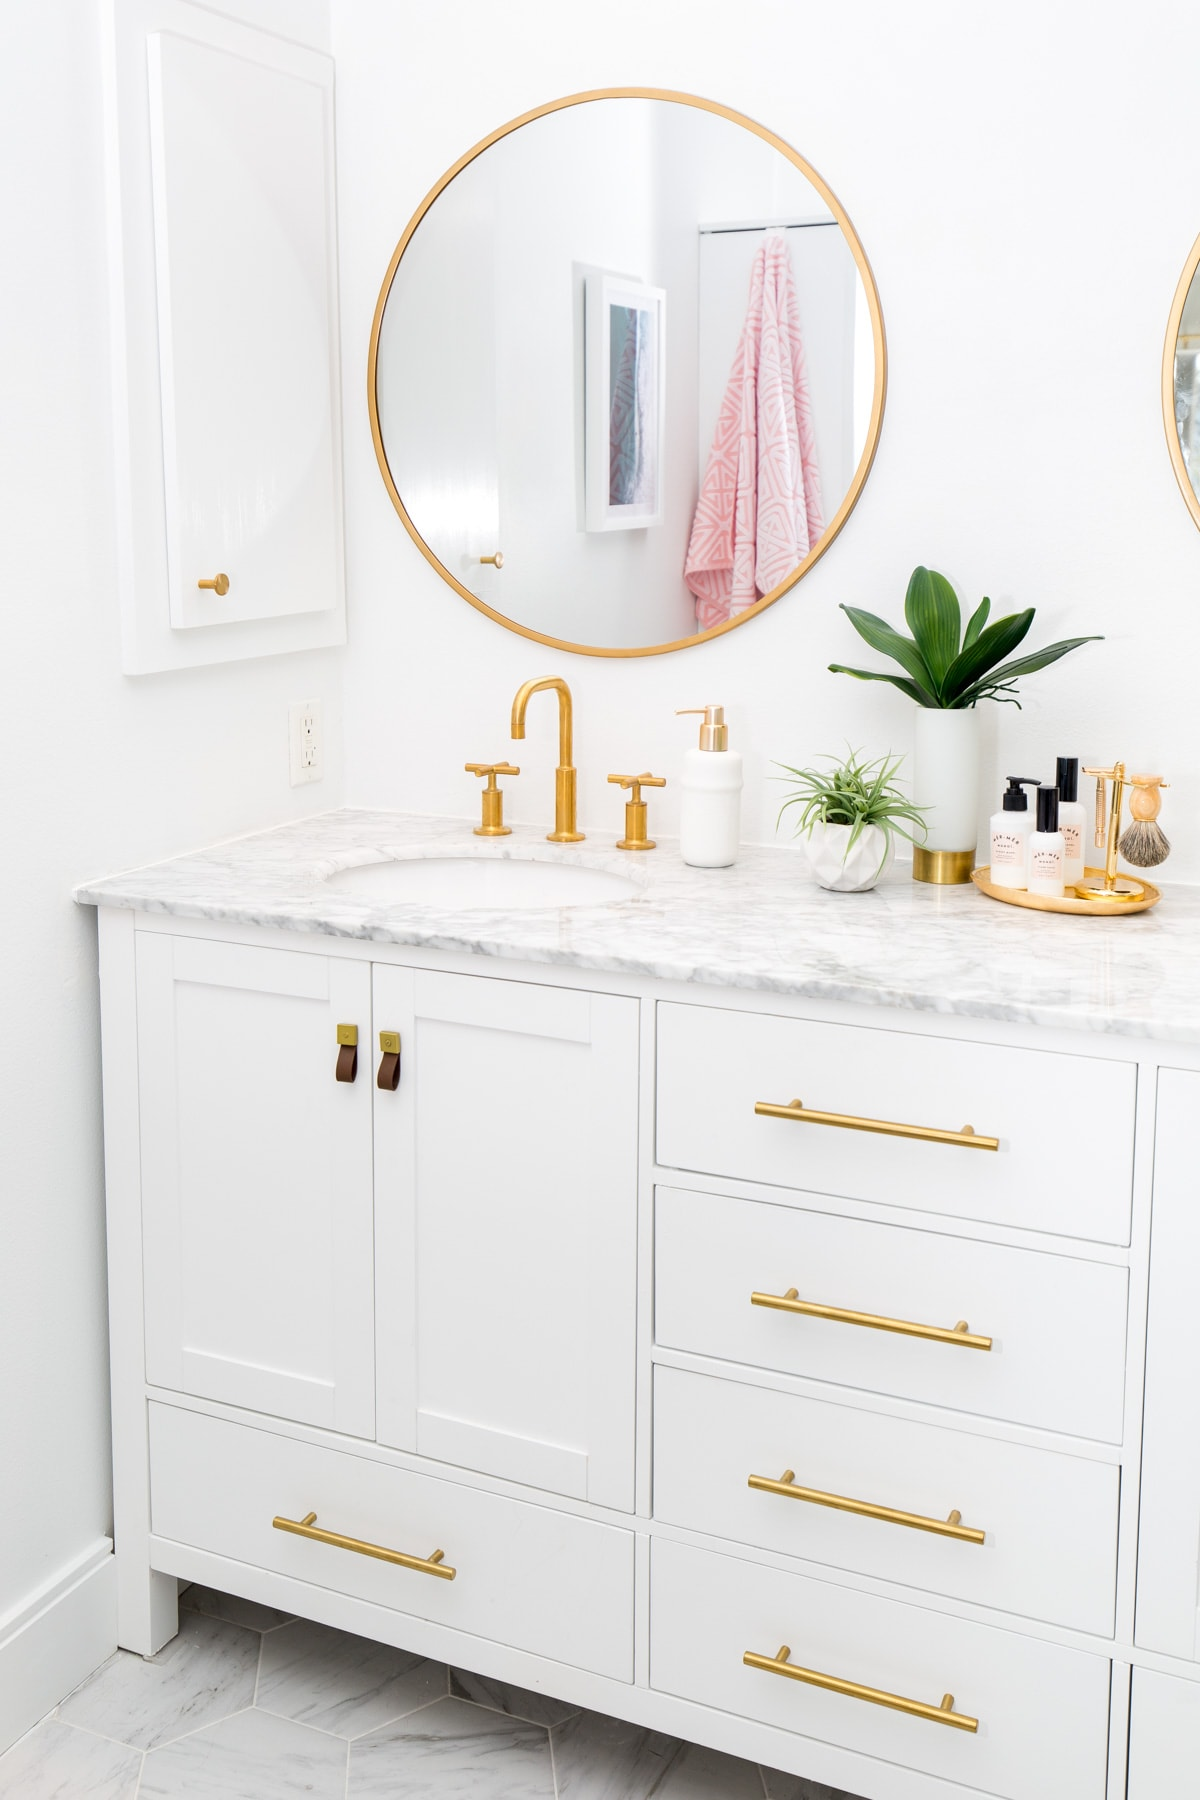 One Room Challenge Final Reveal: Our Master Suite Makeover (+ video) by top Houston lifestyle blogger ashley rose of sugar & Cloth